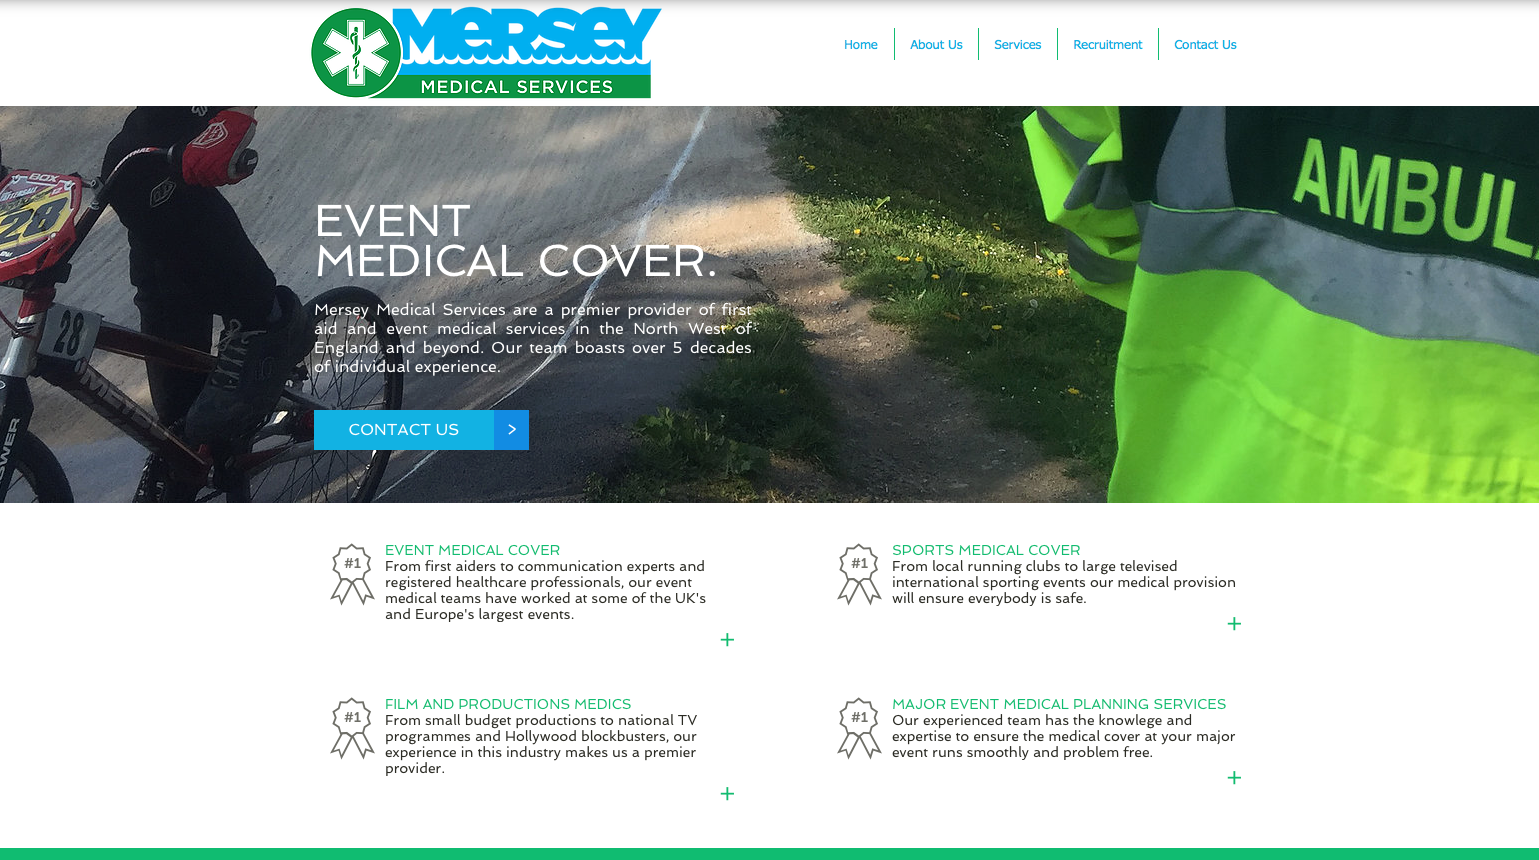 Mersey Medical Services